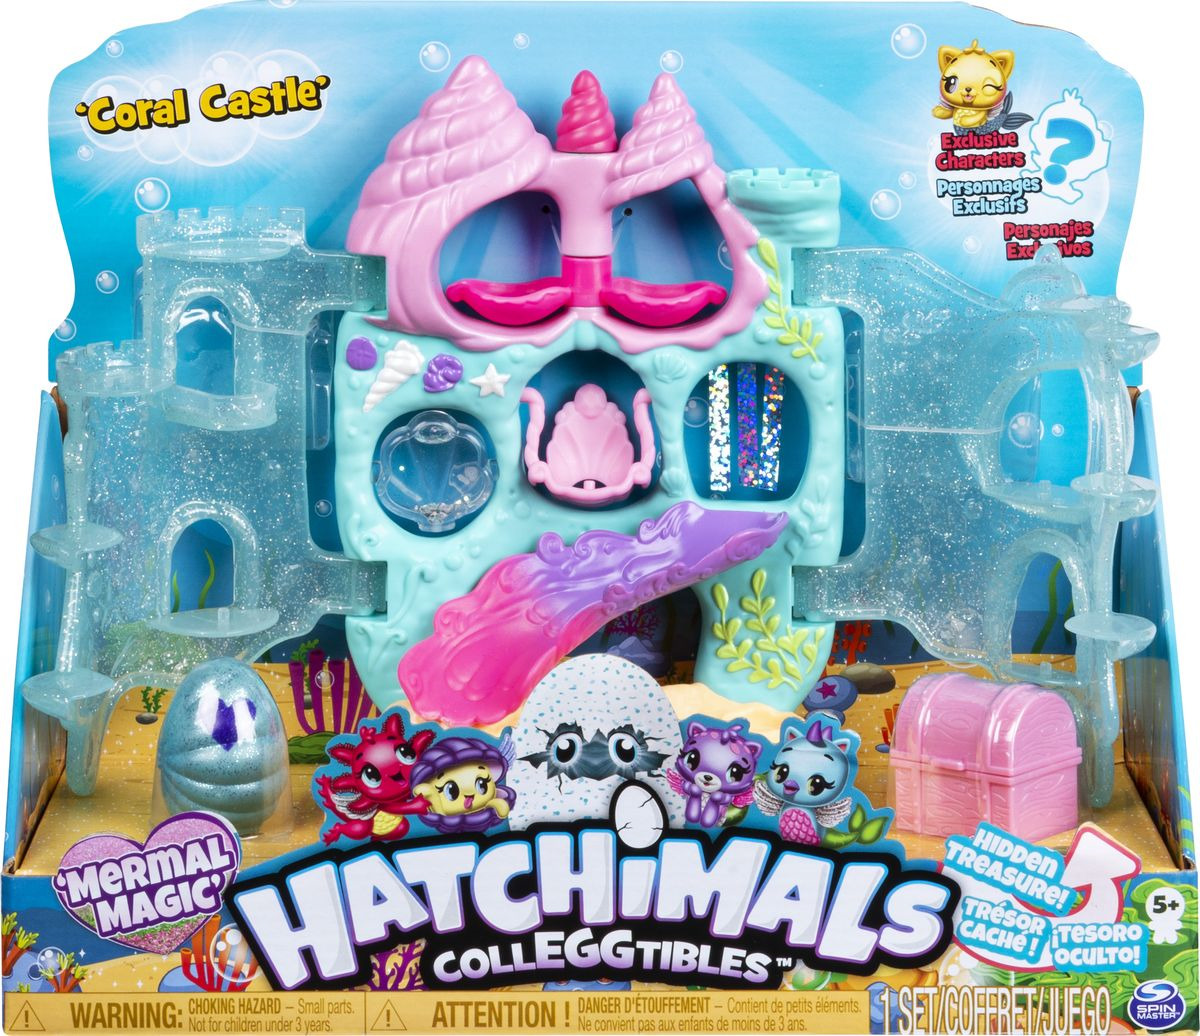 Фигурка Hatchimals Colleggtibles Коралловый дворец, 6045505